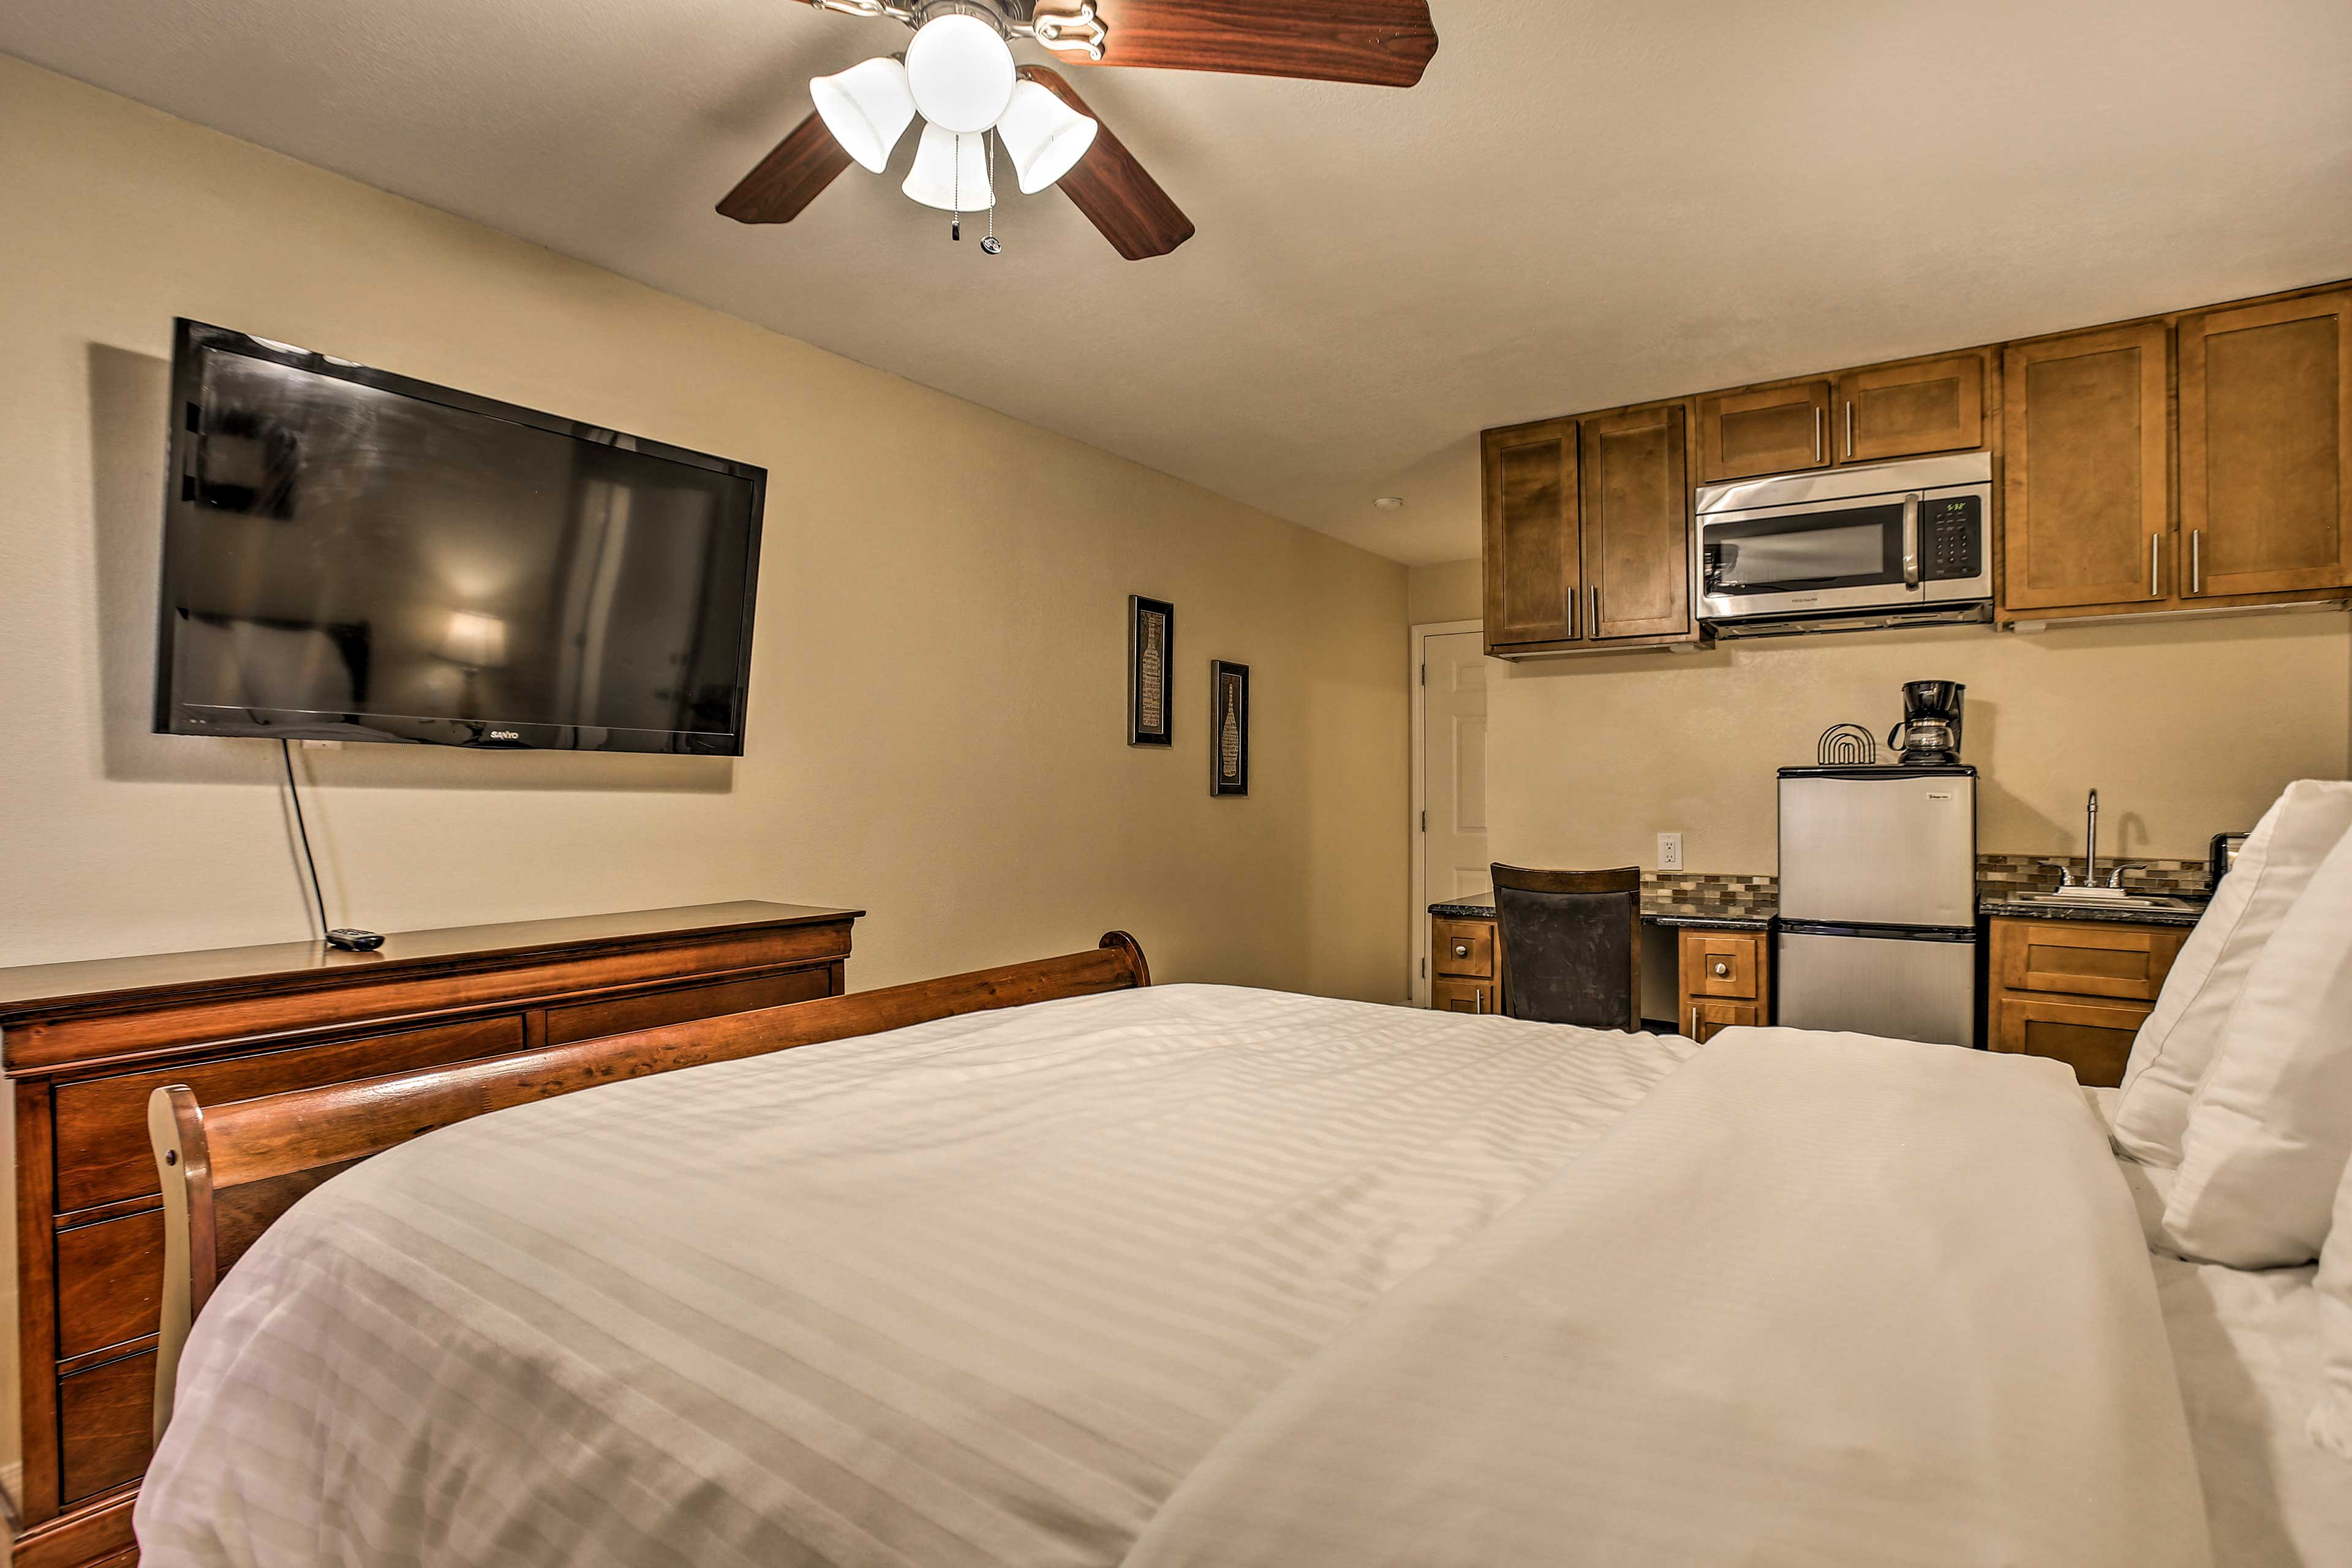 This room features a queen bed, flat-screen TV, and kitchenette.